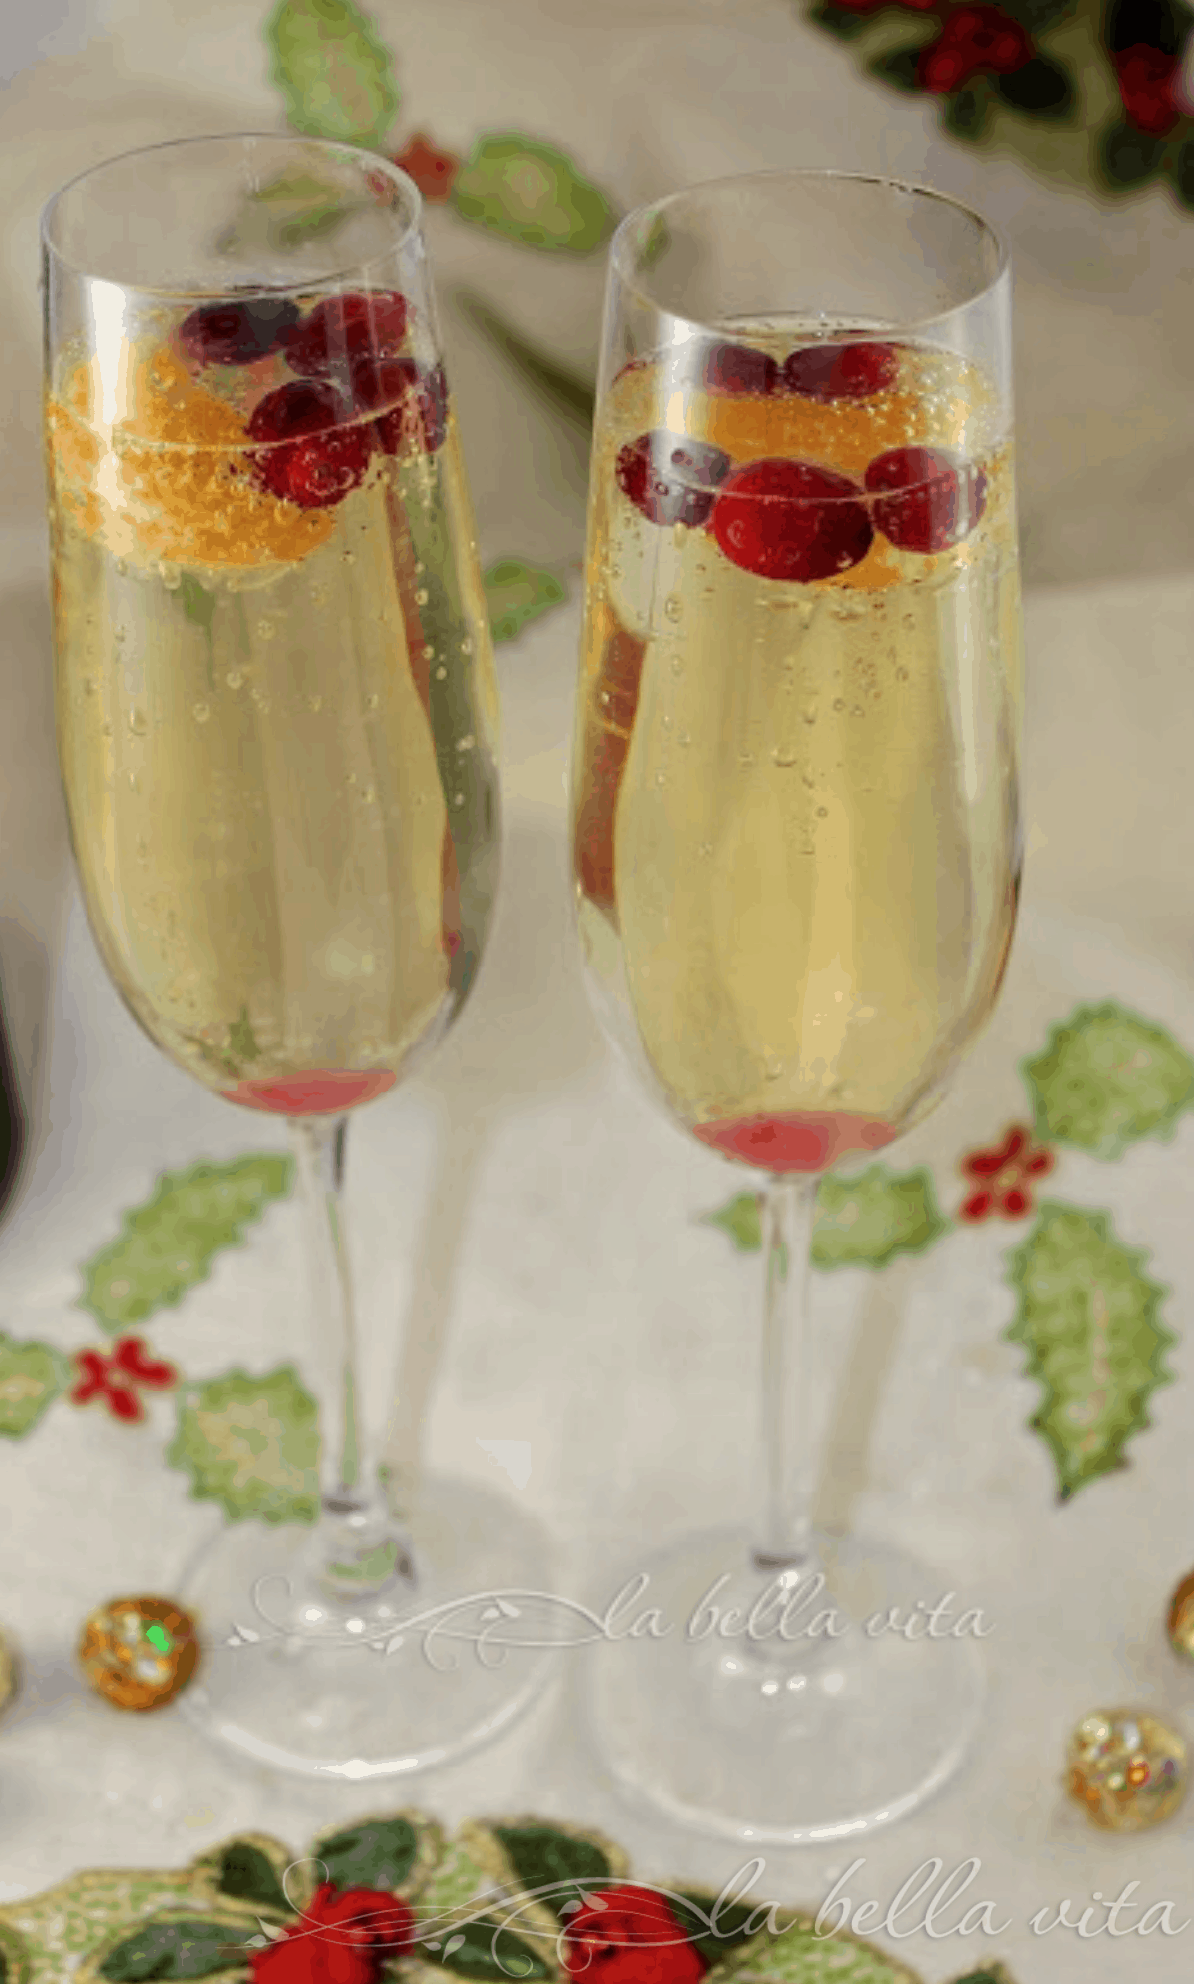 Christmas Cocktails 2020 Prosecco Cranberry, Clementine and Prosecco Cocktails | Recipe in 2020